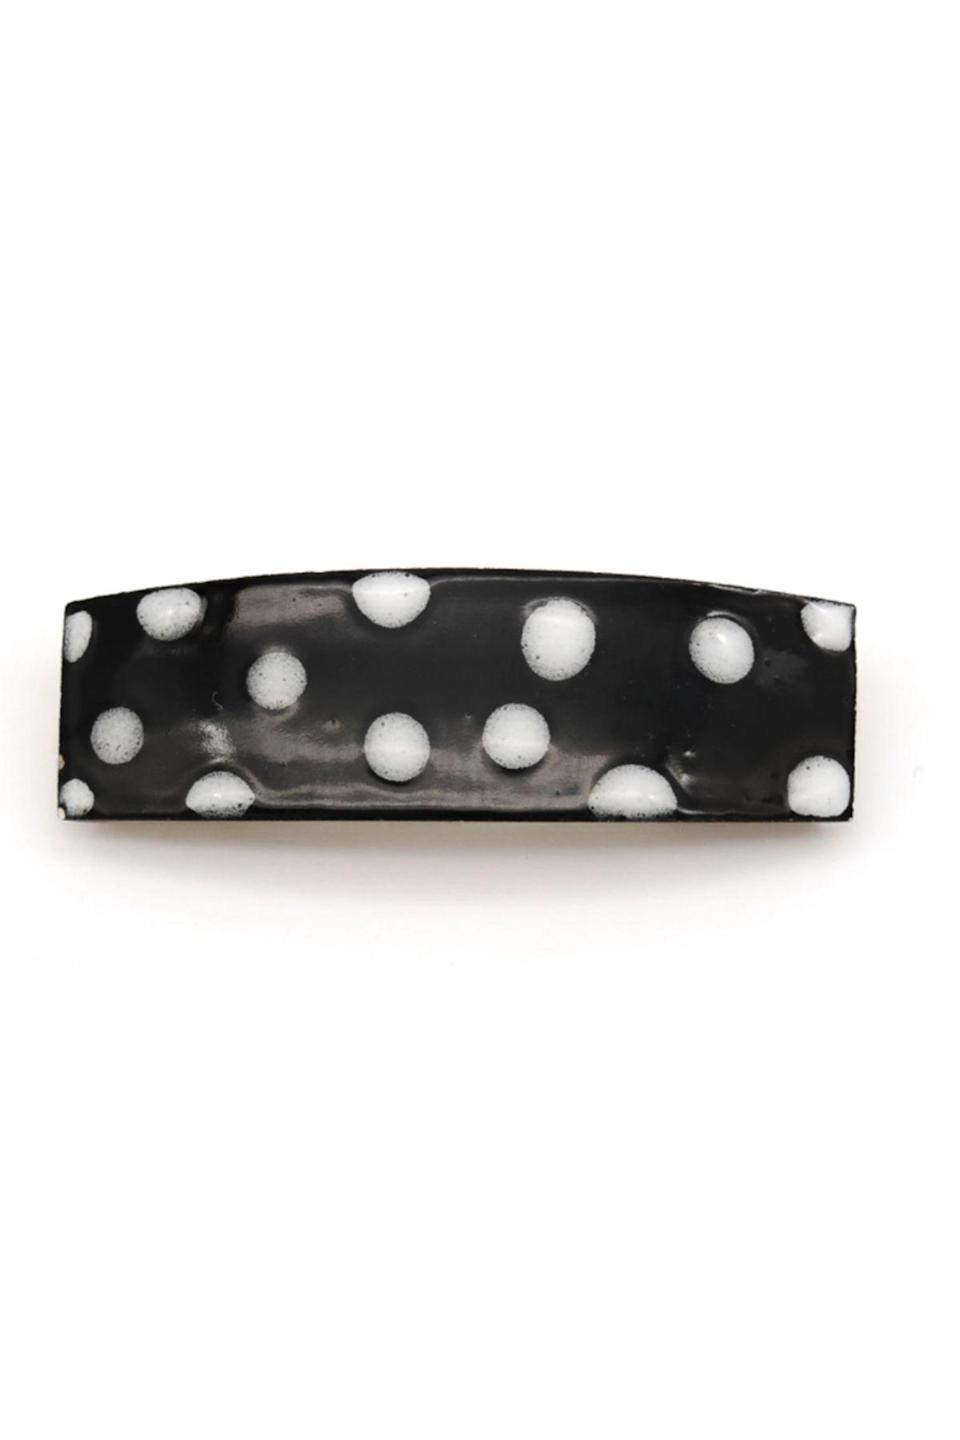 """<p><strong>Juice Ceramics</strong></p><p>juiceceramics.com</p><p><strong>$20.00</strong></p><p><a href=""""https://juiceceramics.com/collections/all/products/polka-dot-barrette"""" rel=""""nofollow noopener"""" target=""""_blank"""" data-ylk=""""slk:Shop Now"""" class=""""link rapid-noclick-resp"""">Shop Now</a></p><p>Juice Ceramics creates handmade accessories and home goods in St. Augustine Florida. This polka dot hair clip can be dressed up, or dressed down. Try it with a plain t-shirt or a casual dress for the biggest impact.</p>"""